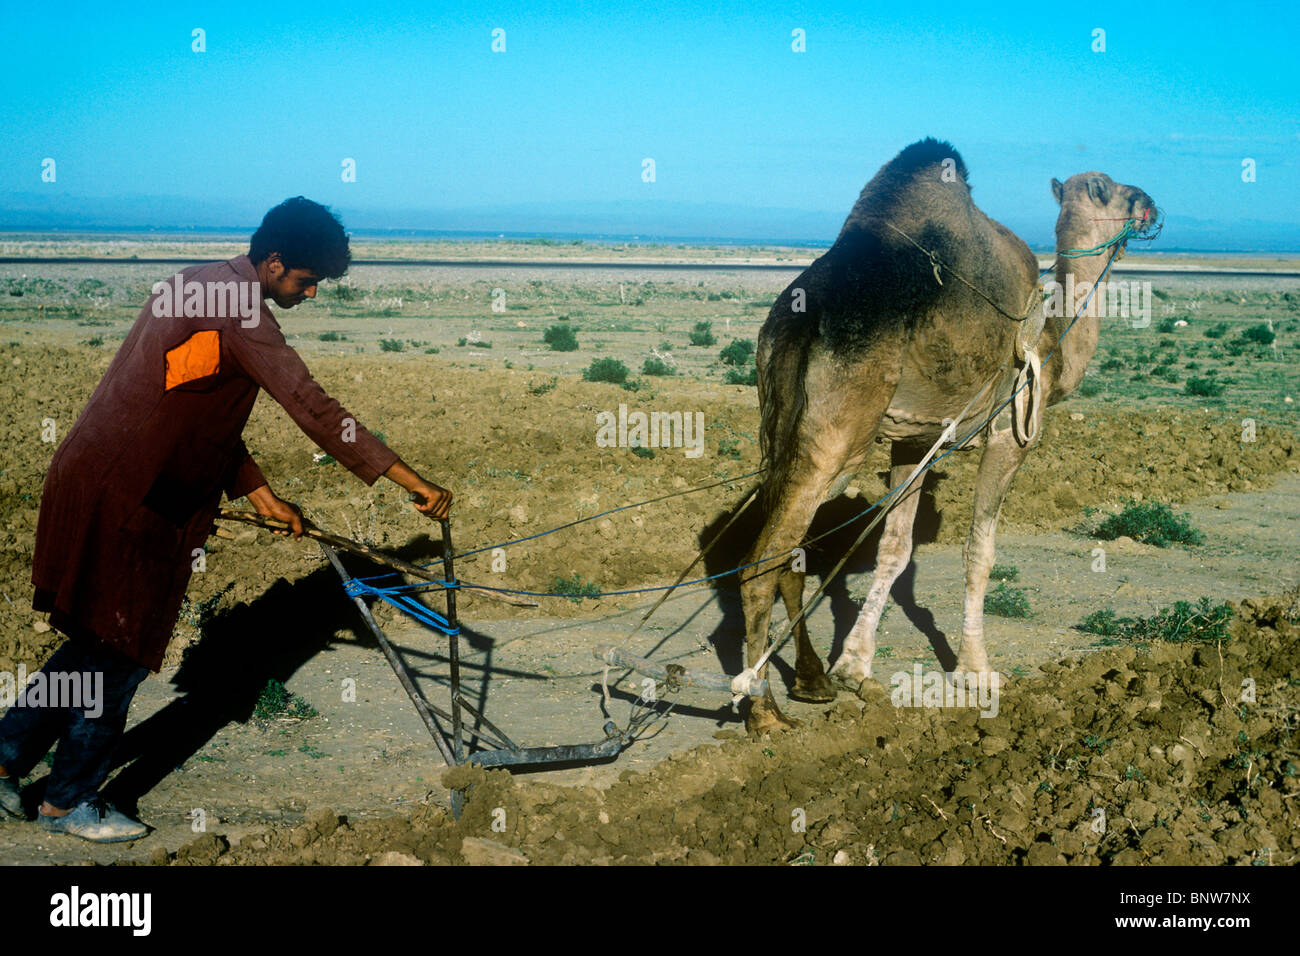 A man using a camel plough in inland Tunisia - Stock Image